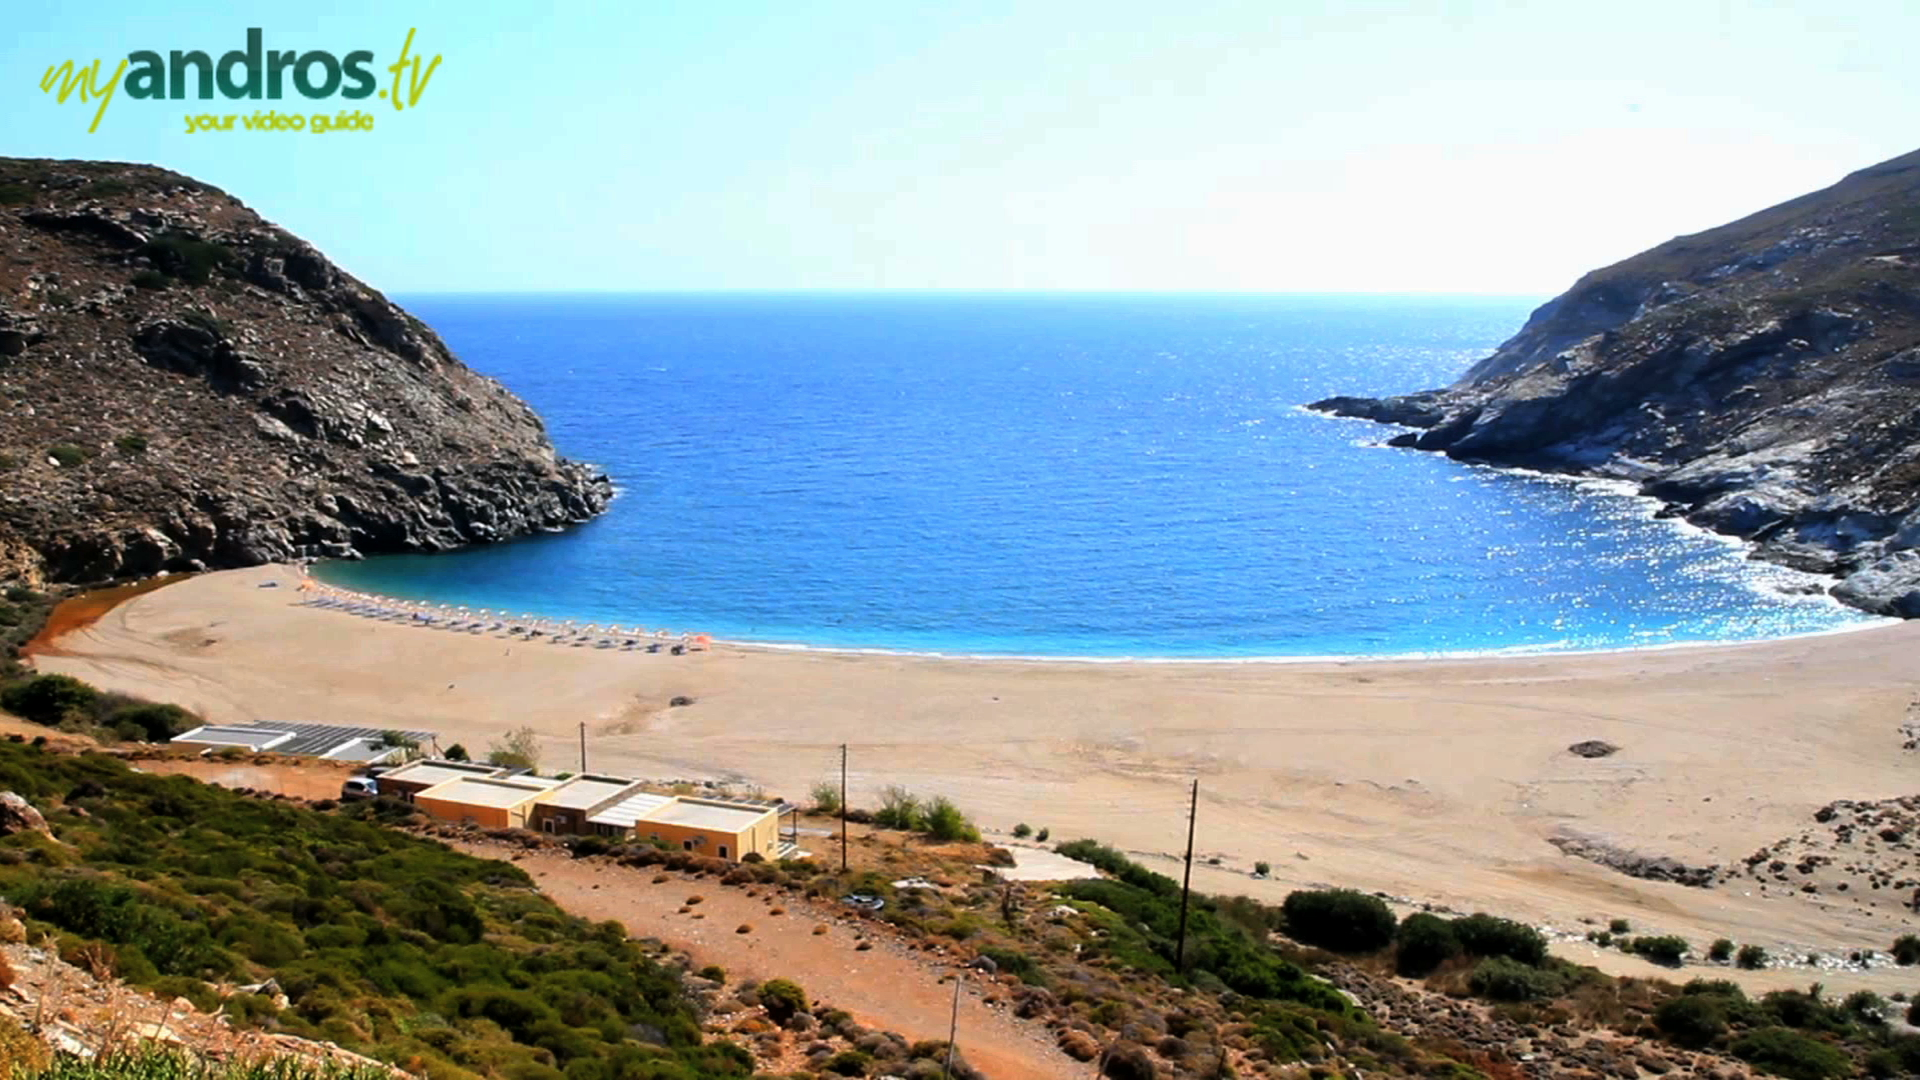 Best Beaches of Andros